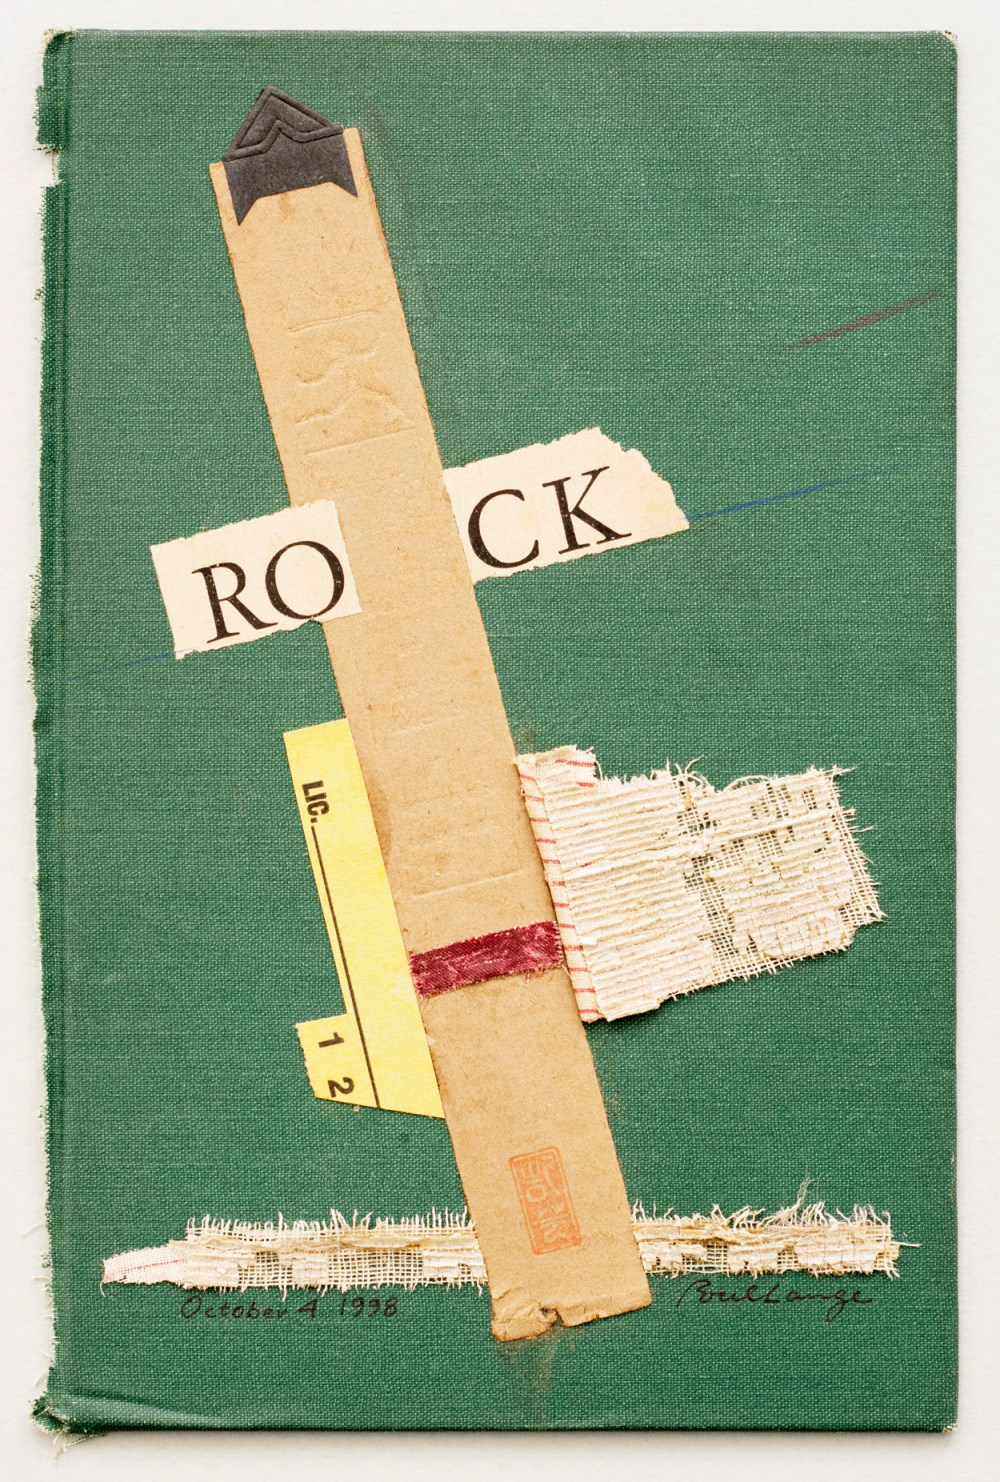 Constructing Art From Books